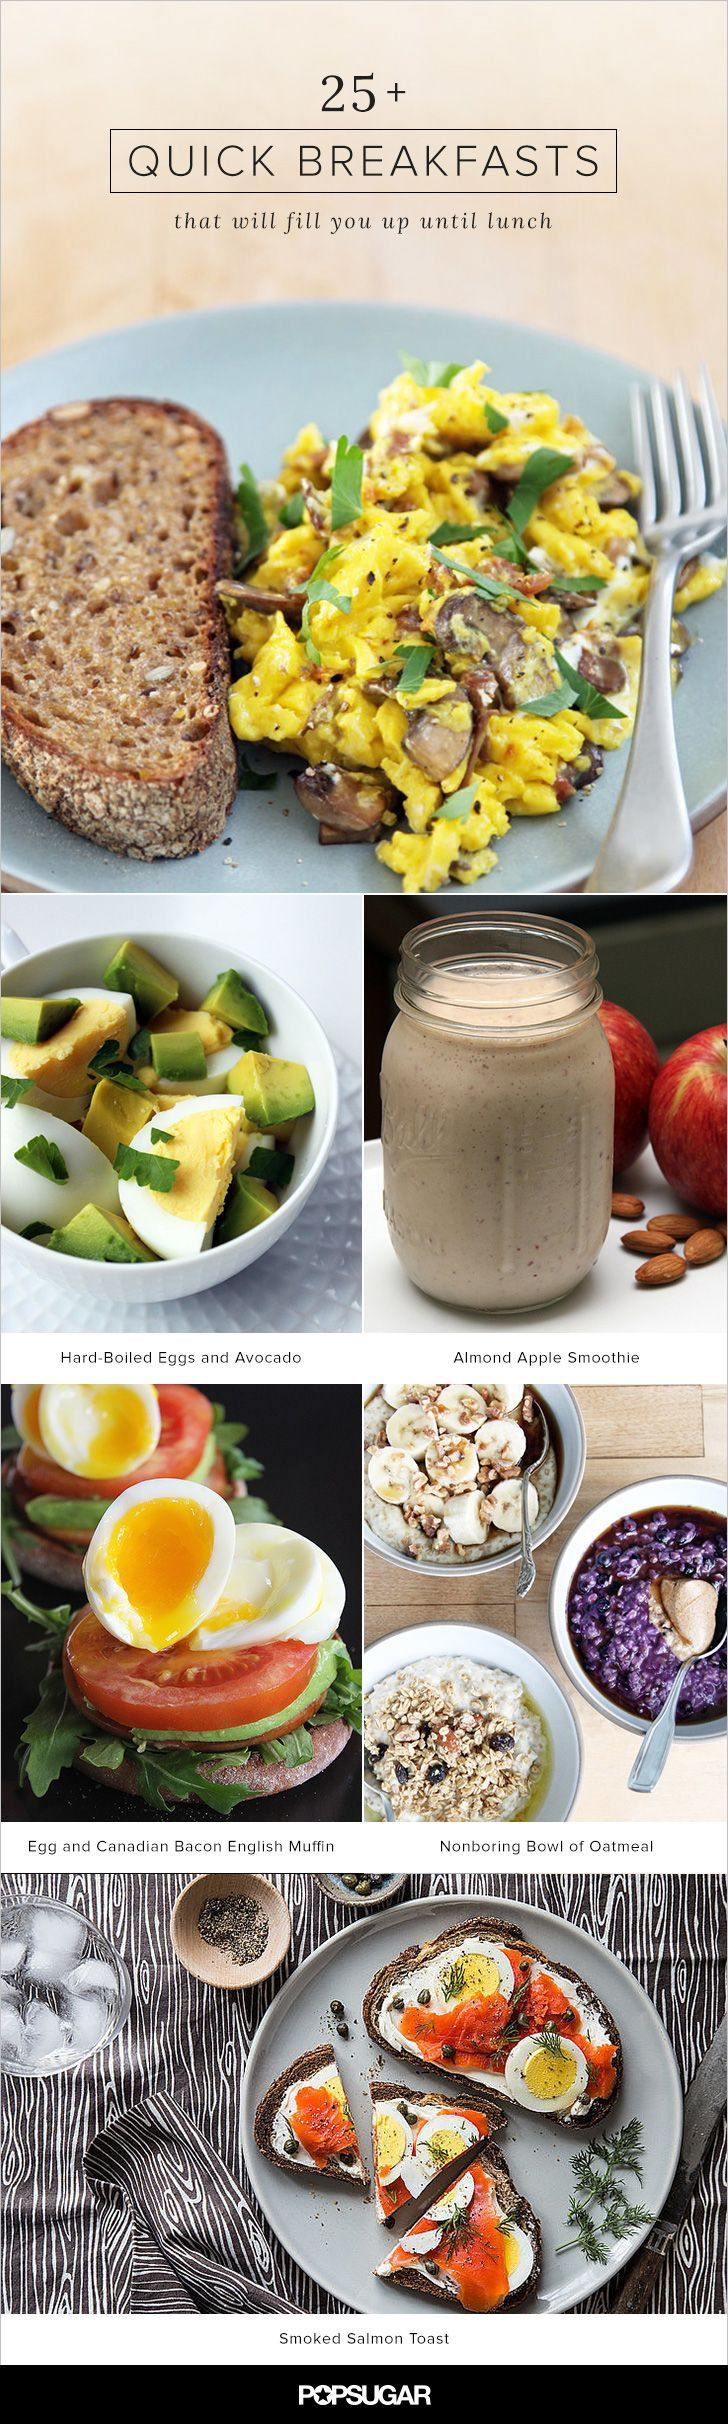 26 delicious breakfasts that are quick, easy, and filling.